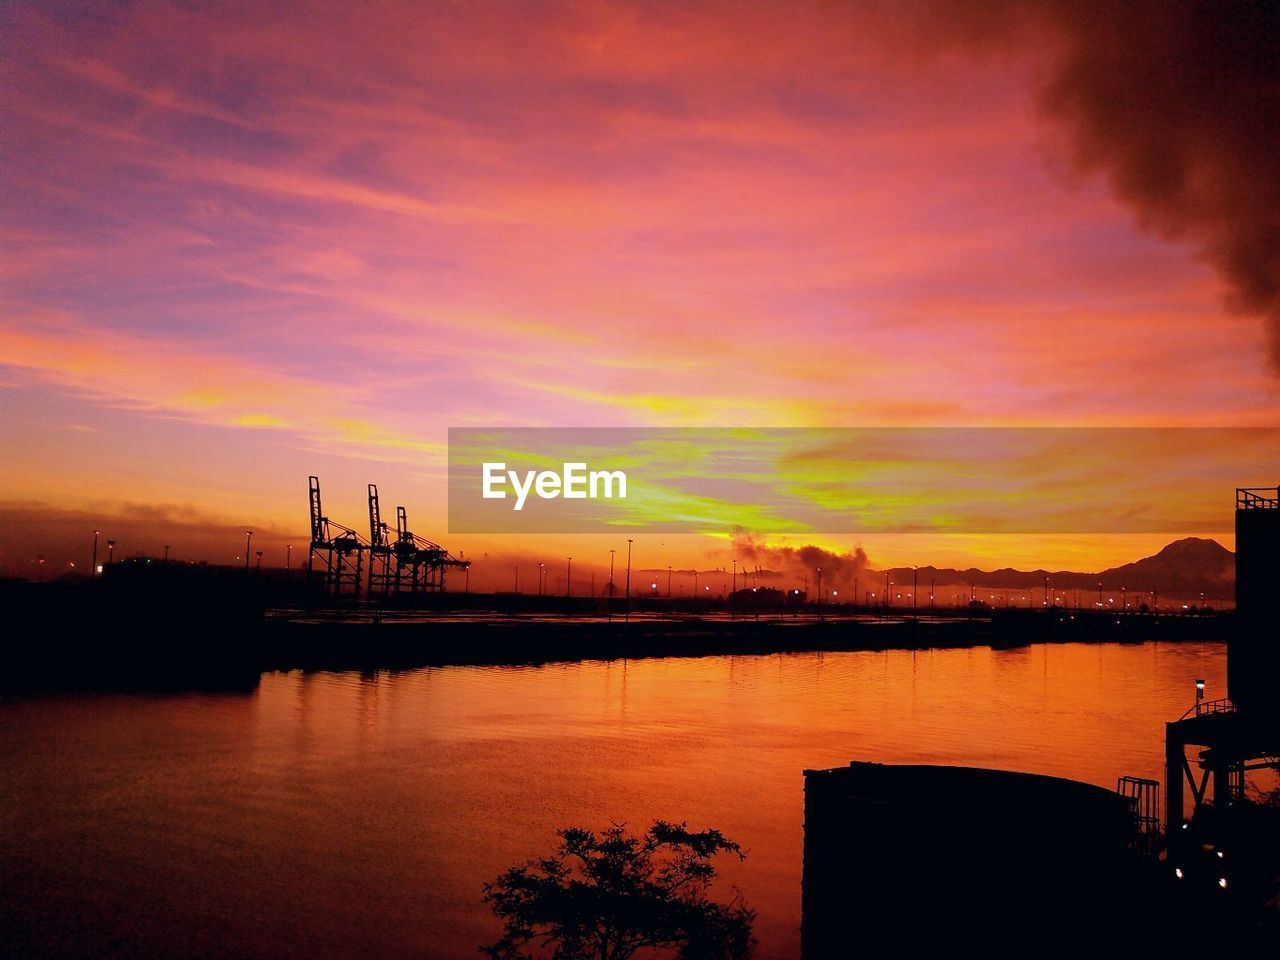 sunset, sky, water, cloud - sky, orange color, silhouette, beauty in nature, scenics - nature, nature, industry, nautical vessel, architecture, no people, transportation, dramatic sky, sea, crane - construction machinery, machinery, tranquility, outdoors, construction equipment